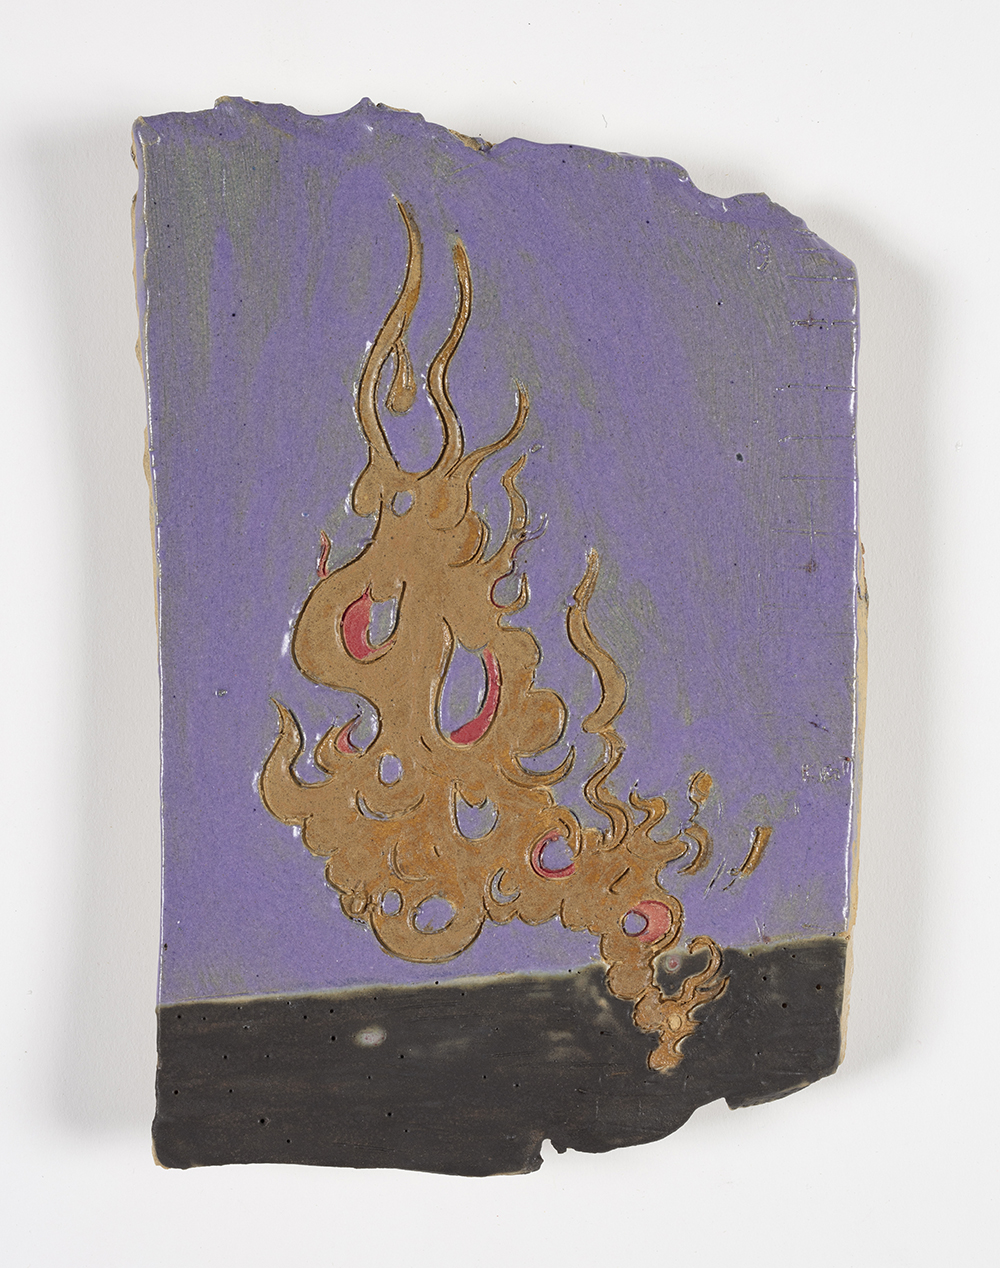 Kevin McNamee-Tweed.<em> Spontaneoto</em>, 2019. Glazed ceramic, 9 x 6 inches (22.9 x 15.2 cm)